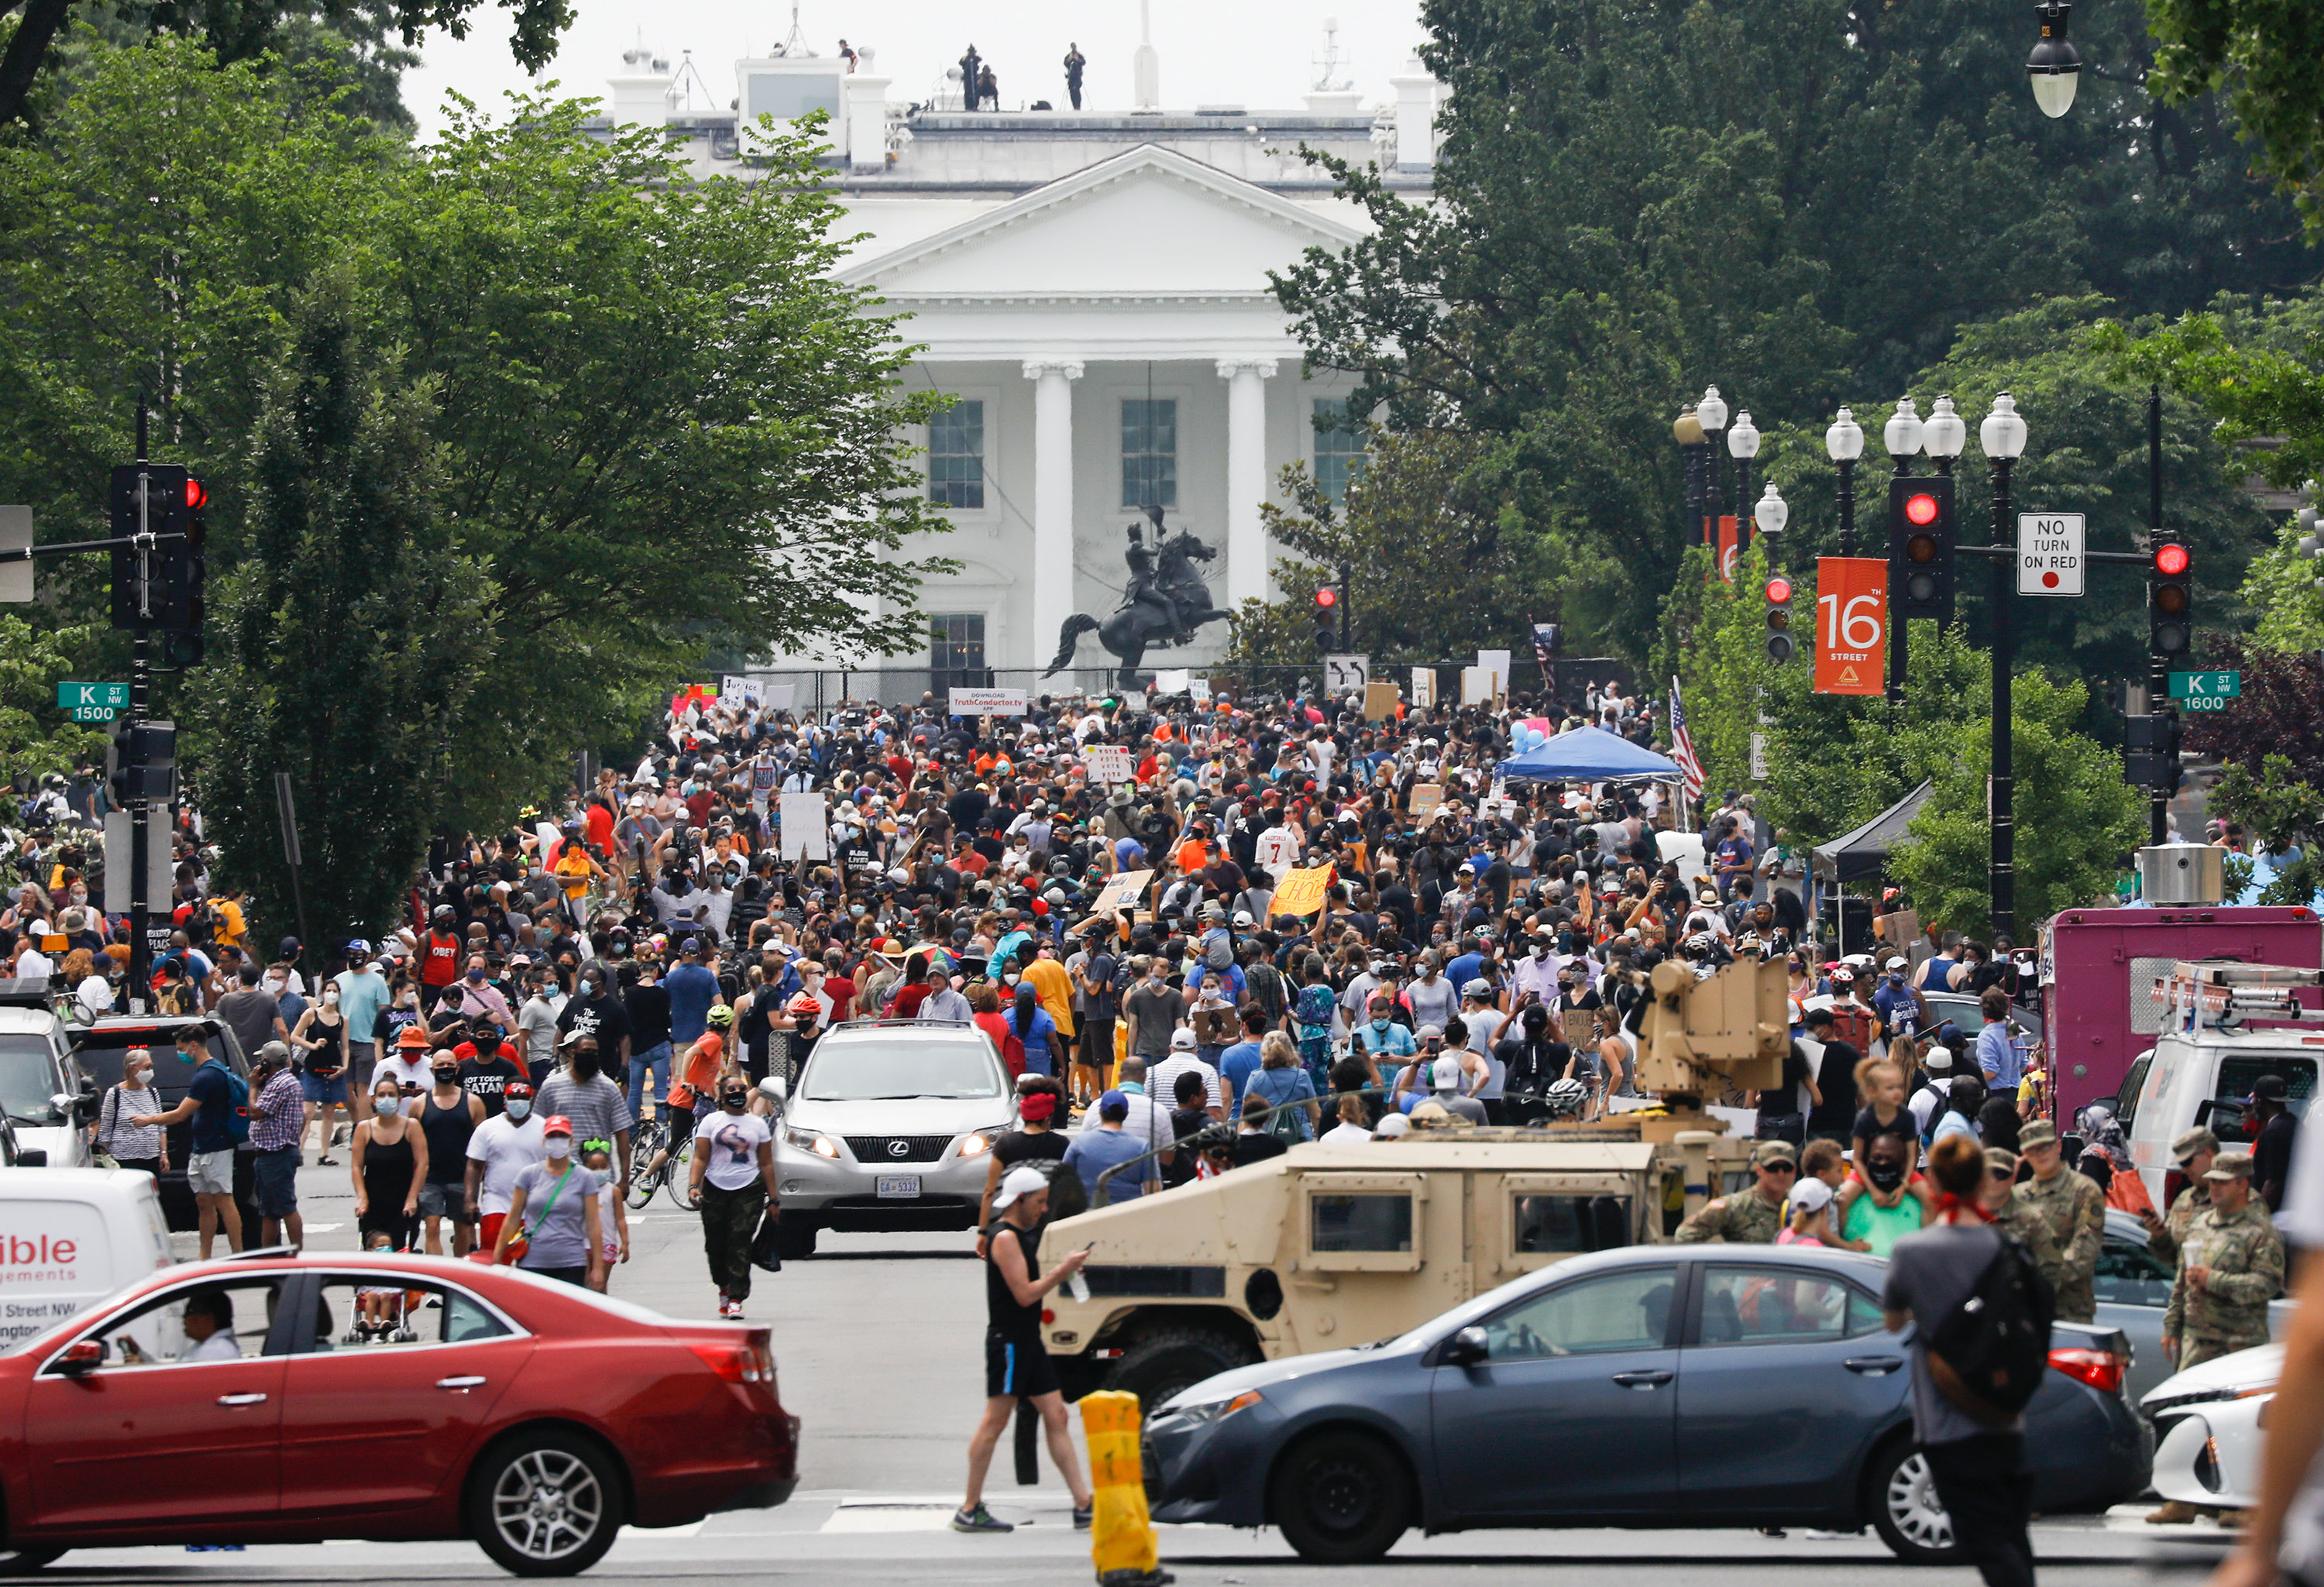 Demonstrators protest on 16th Street near the White House in Washington on Saturday, June 6.